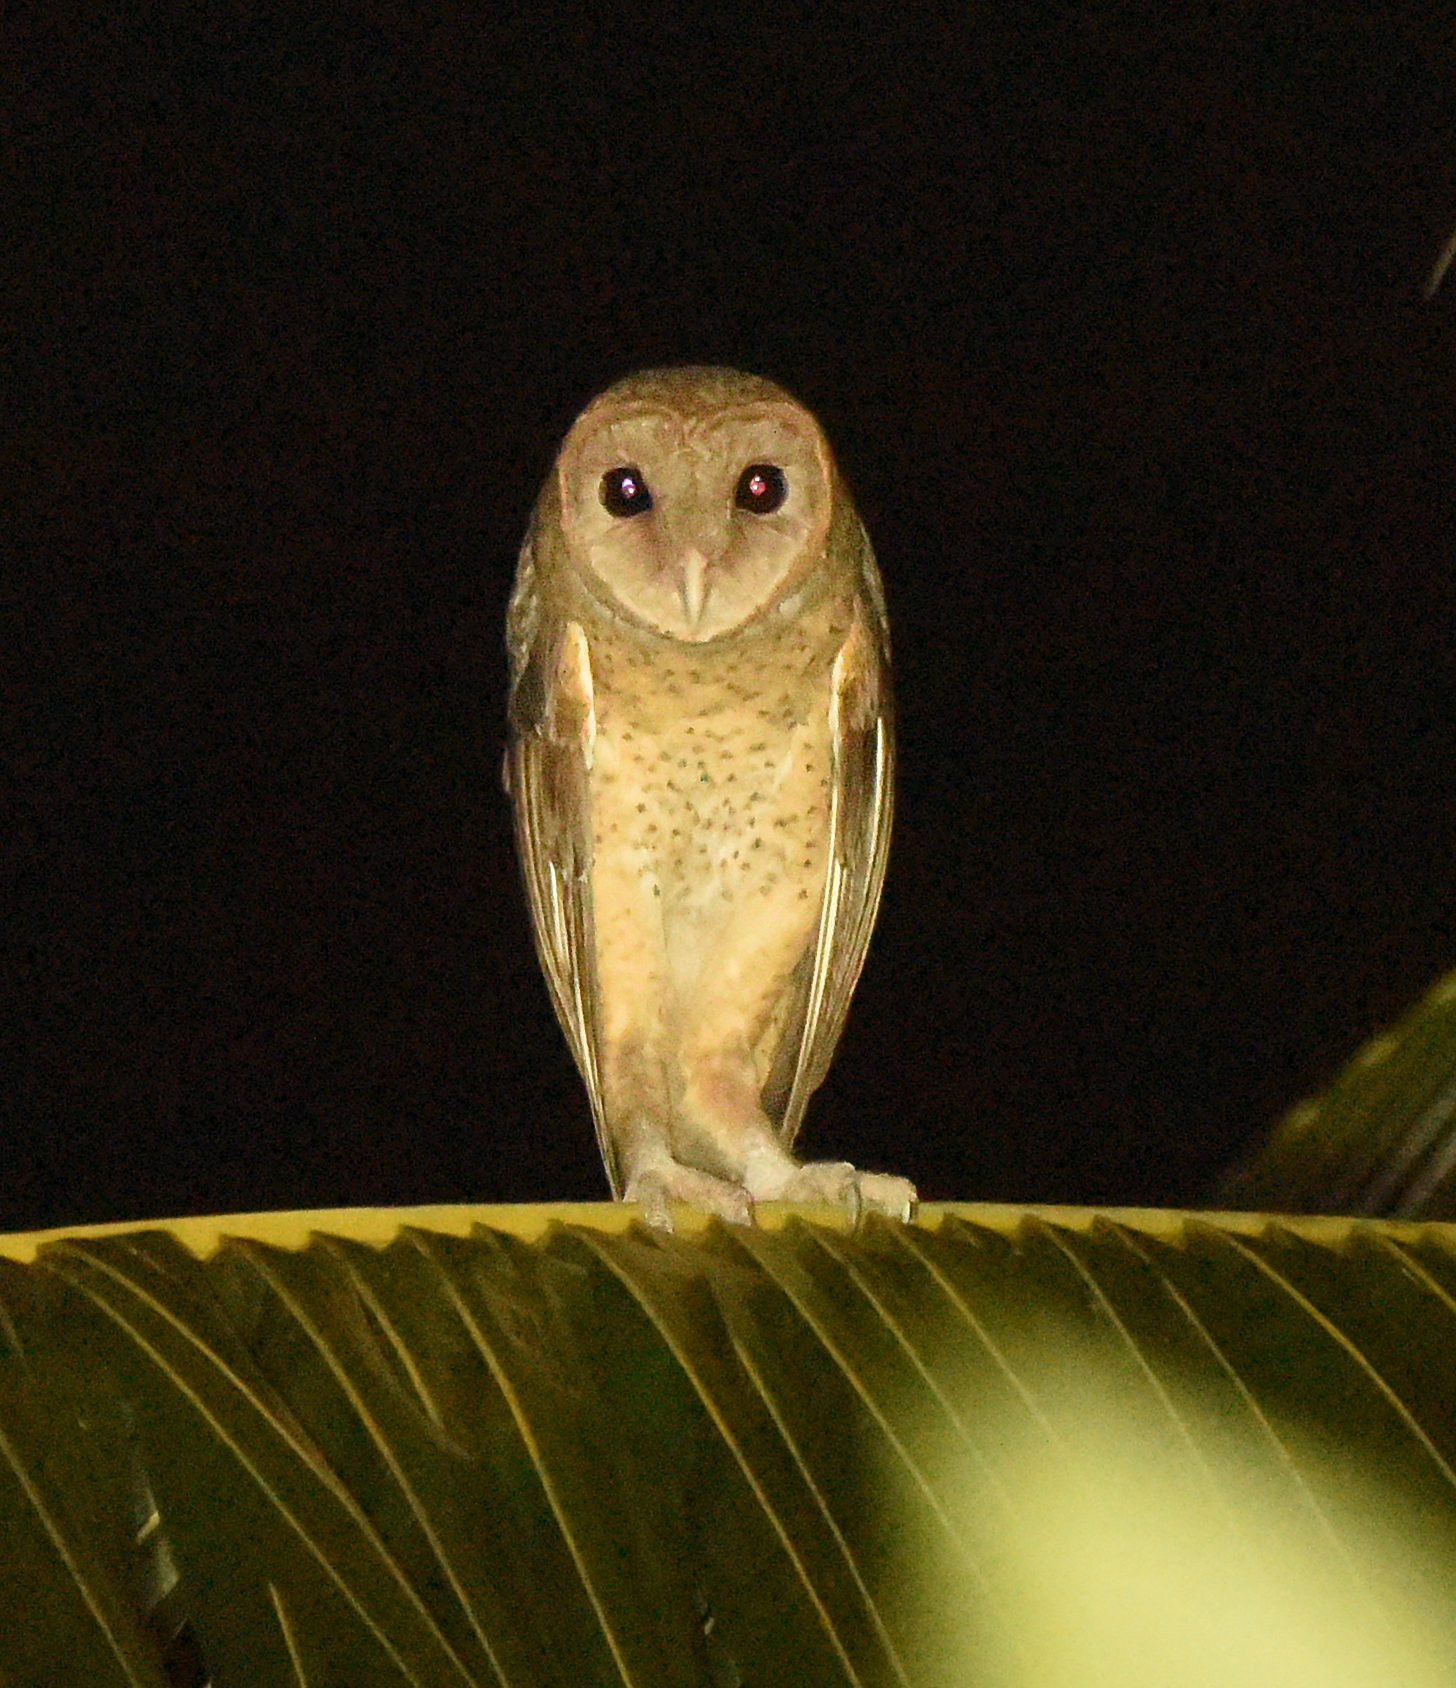 https://upload.wikimedia.org/wikipedia/commons/5/54/Andaman_Masked_Owl_SS.jpg